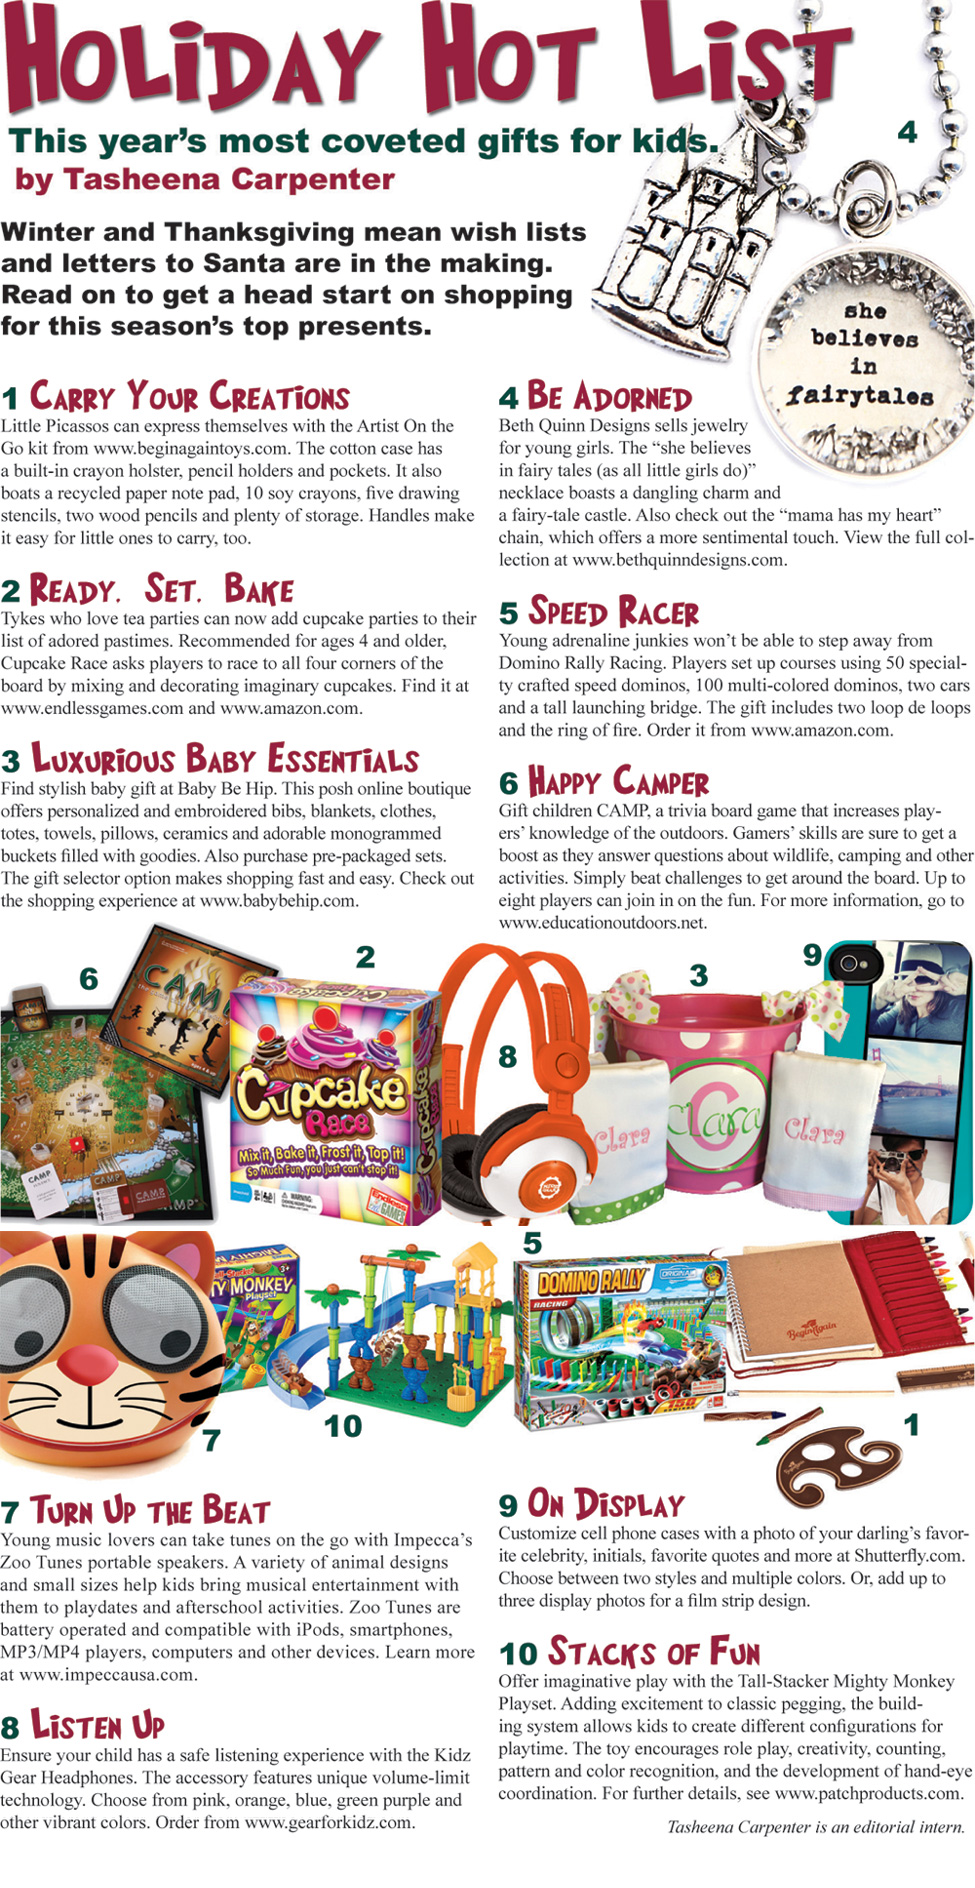 Holiday Hot List | PARENTGUIDE News